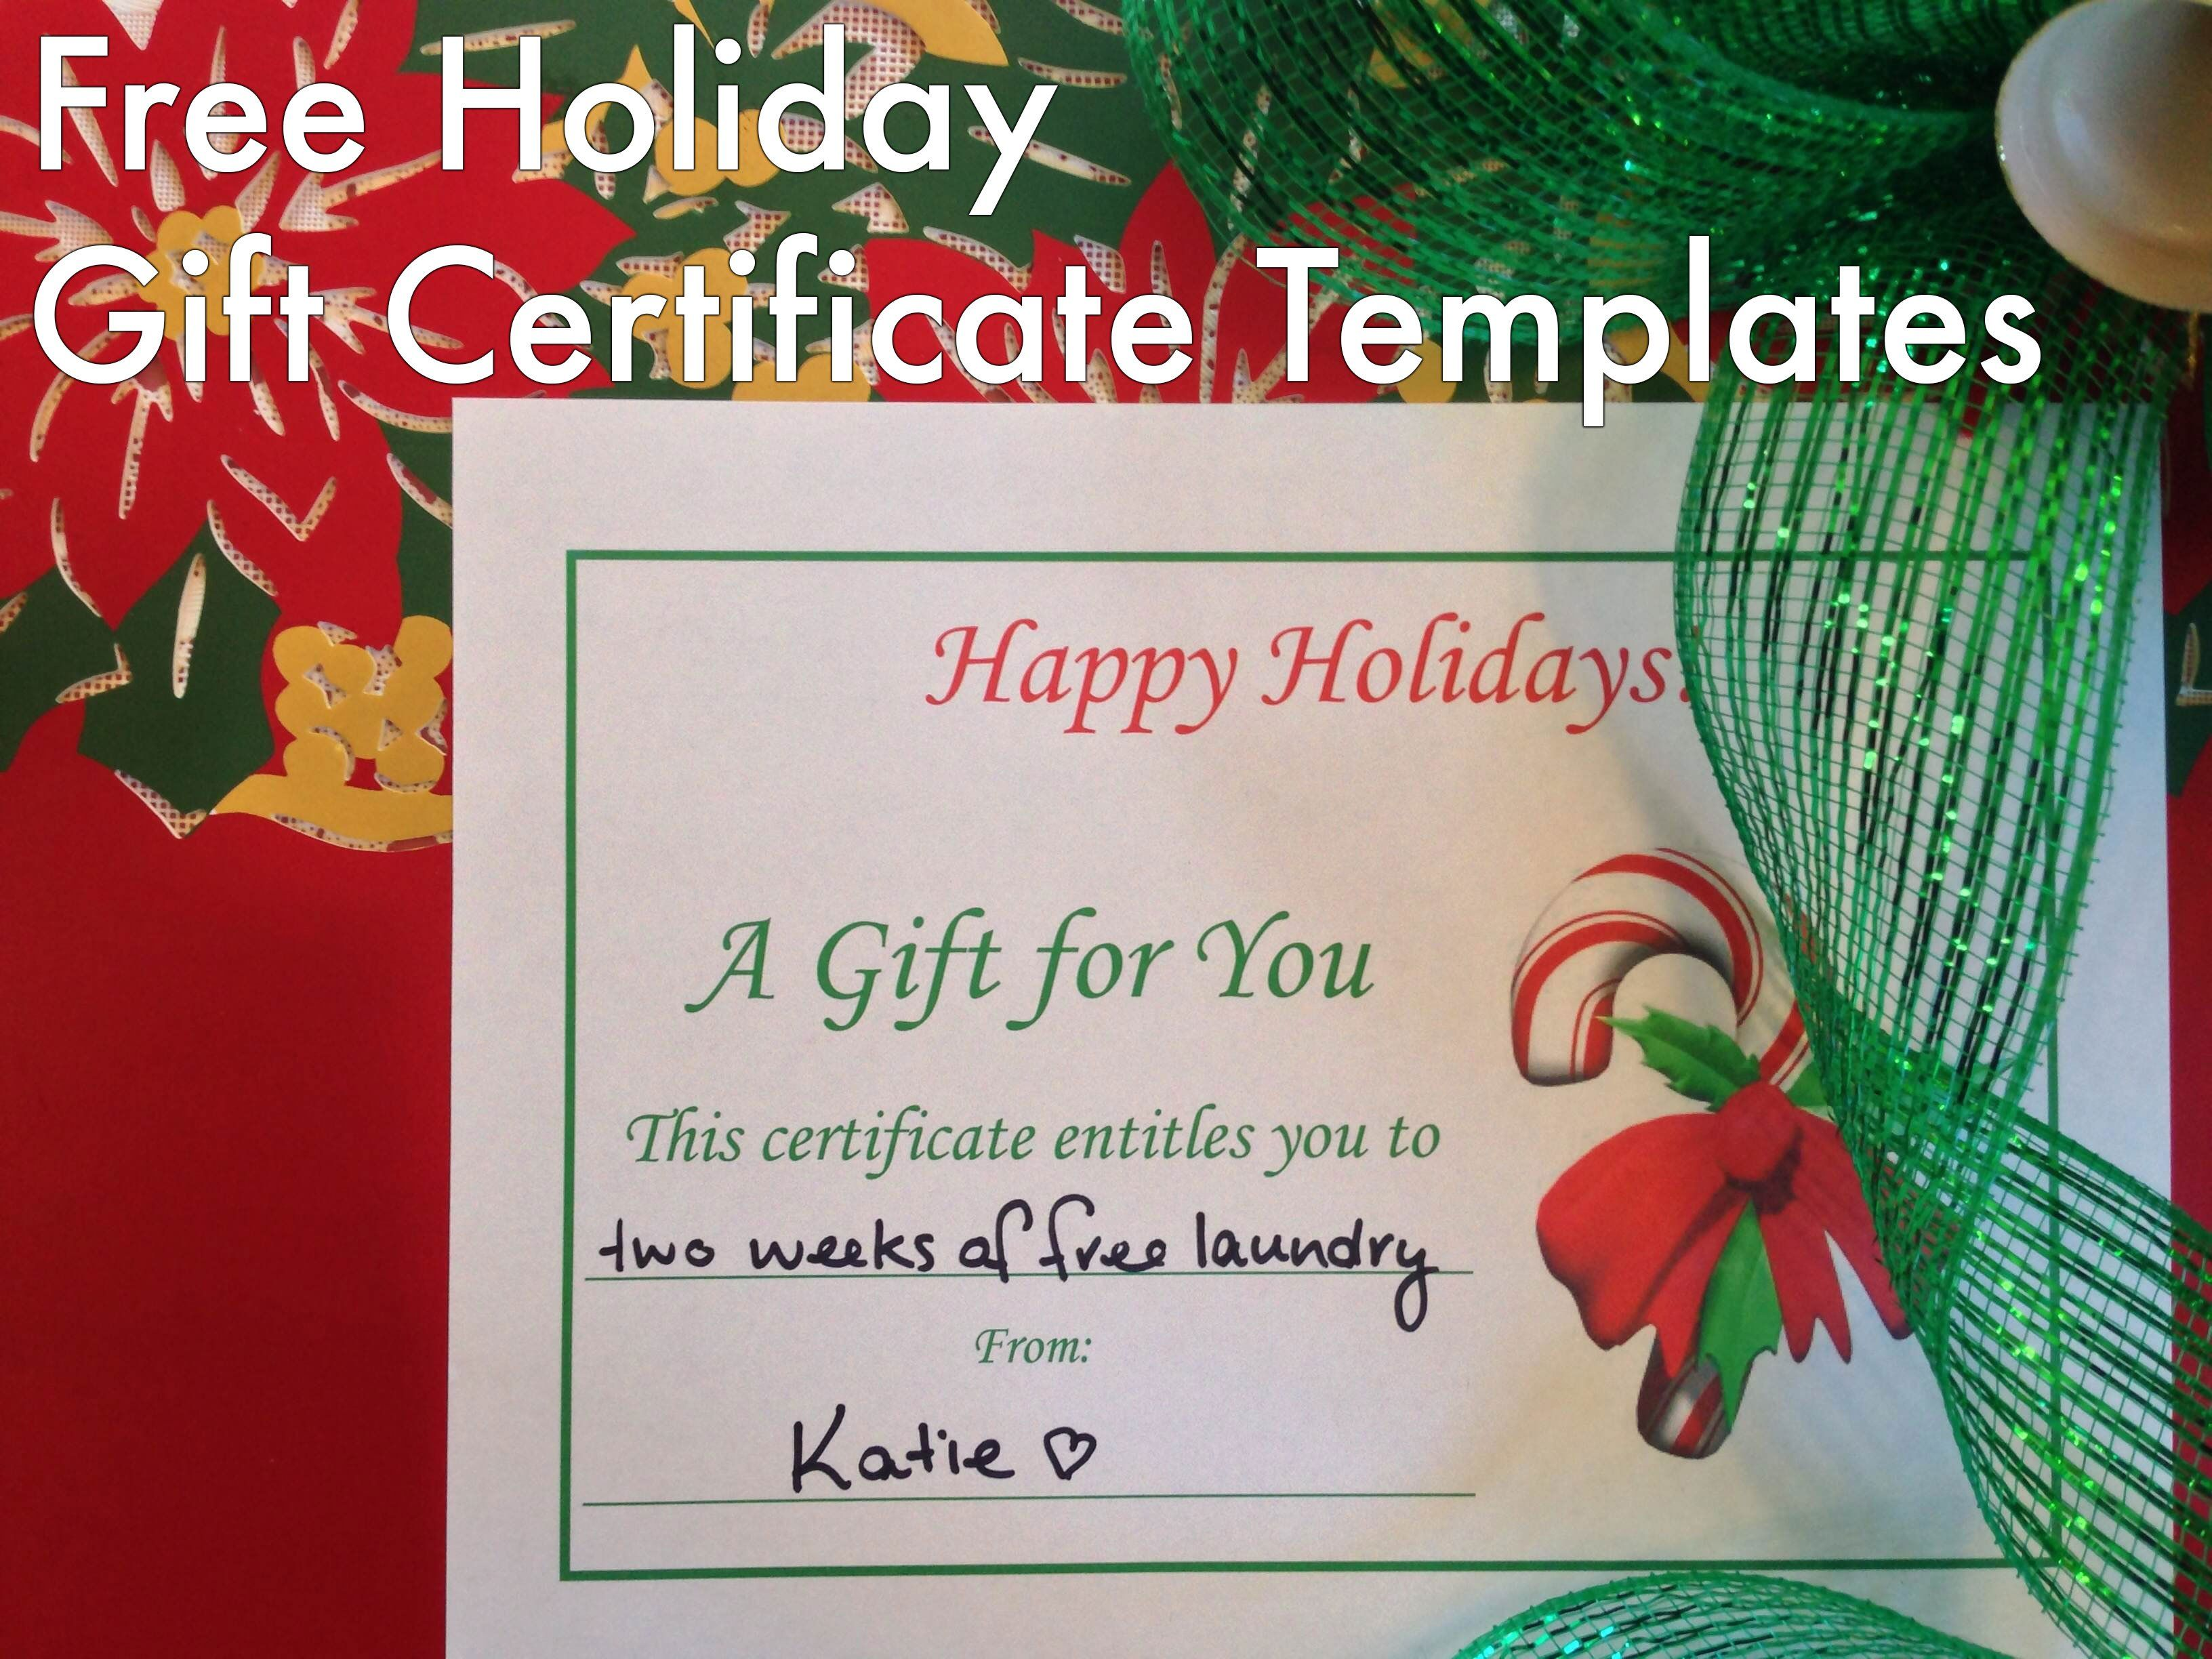 Free Holiday Gift Certificates Templates To Print Gift Certificate - Holiday gift certificate template free